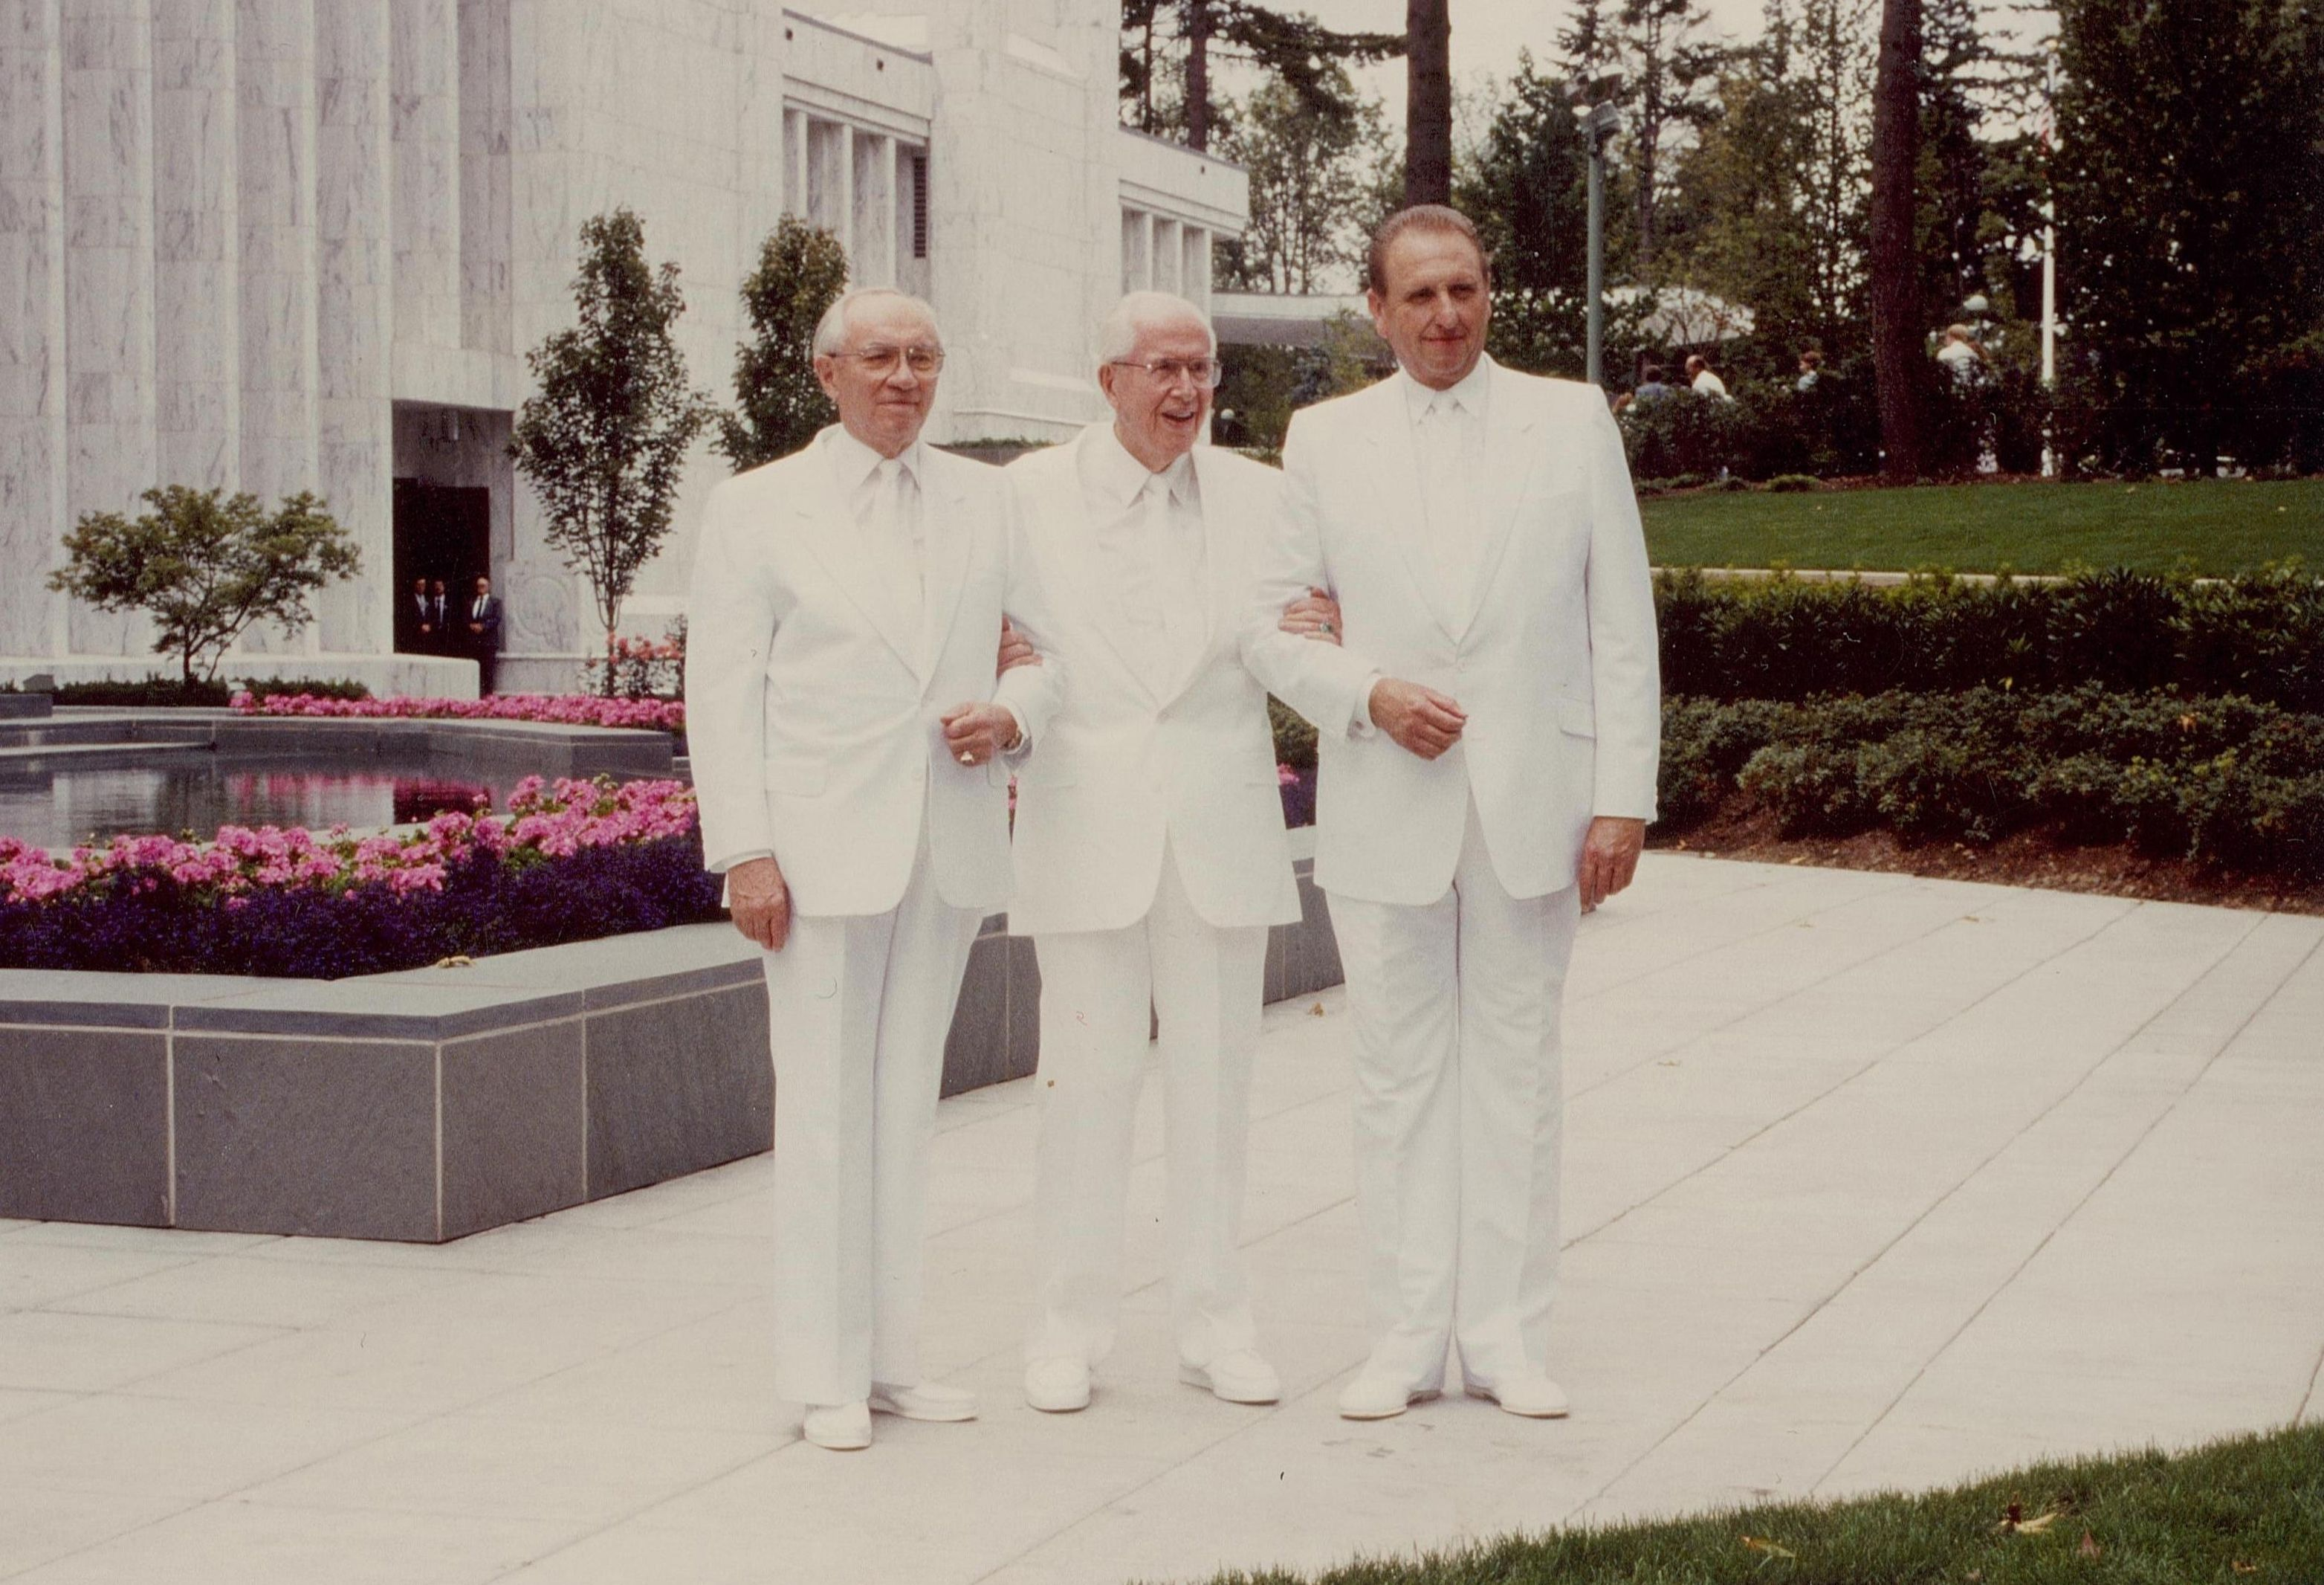 President Benson standing with his counselors at the Portland Oregon Temple dedication.